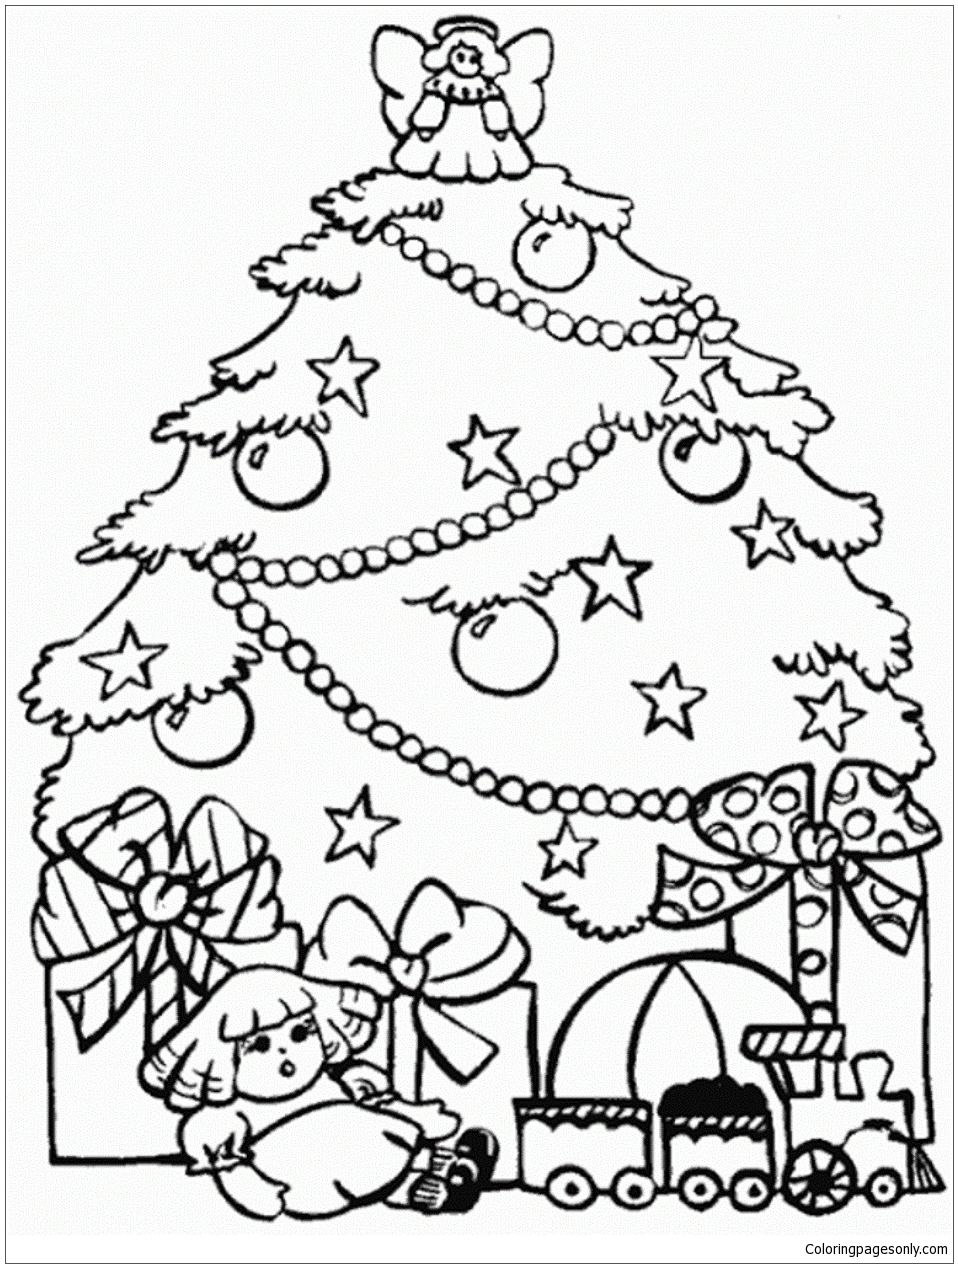 Presents and christmas tree coloring page free coloring for Coloring pages of christmas presents